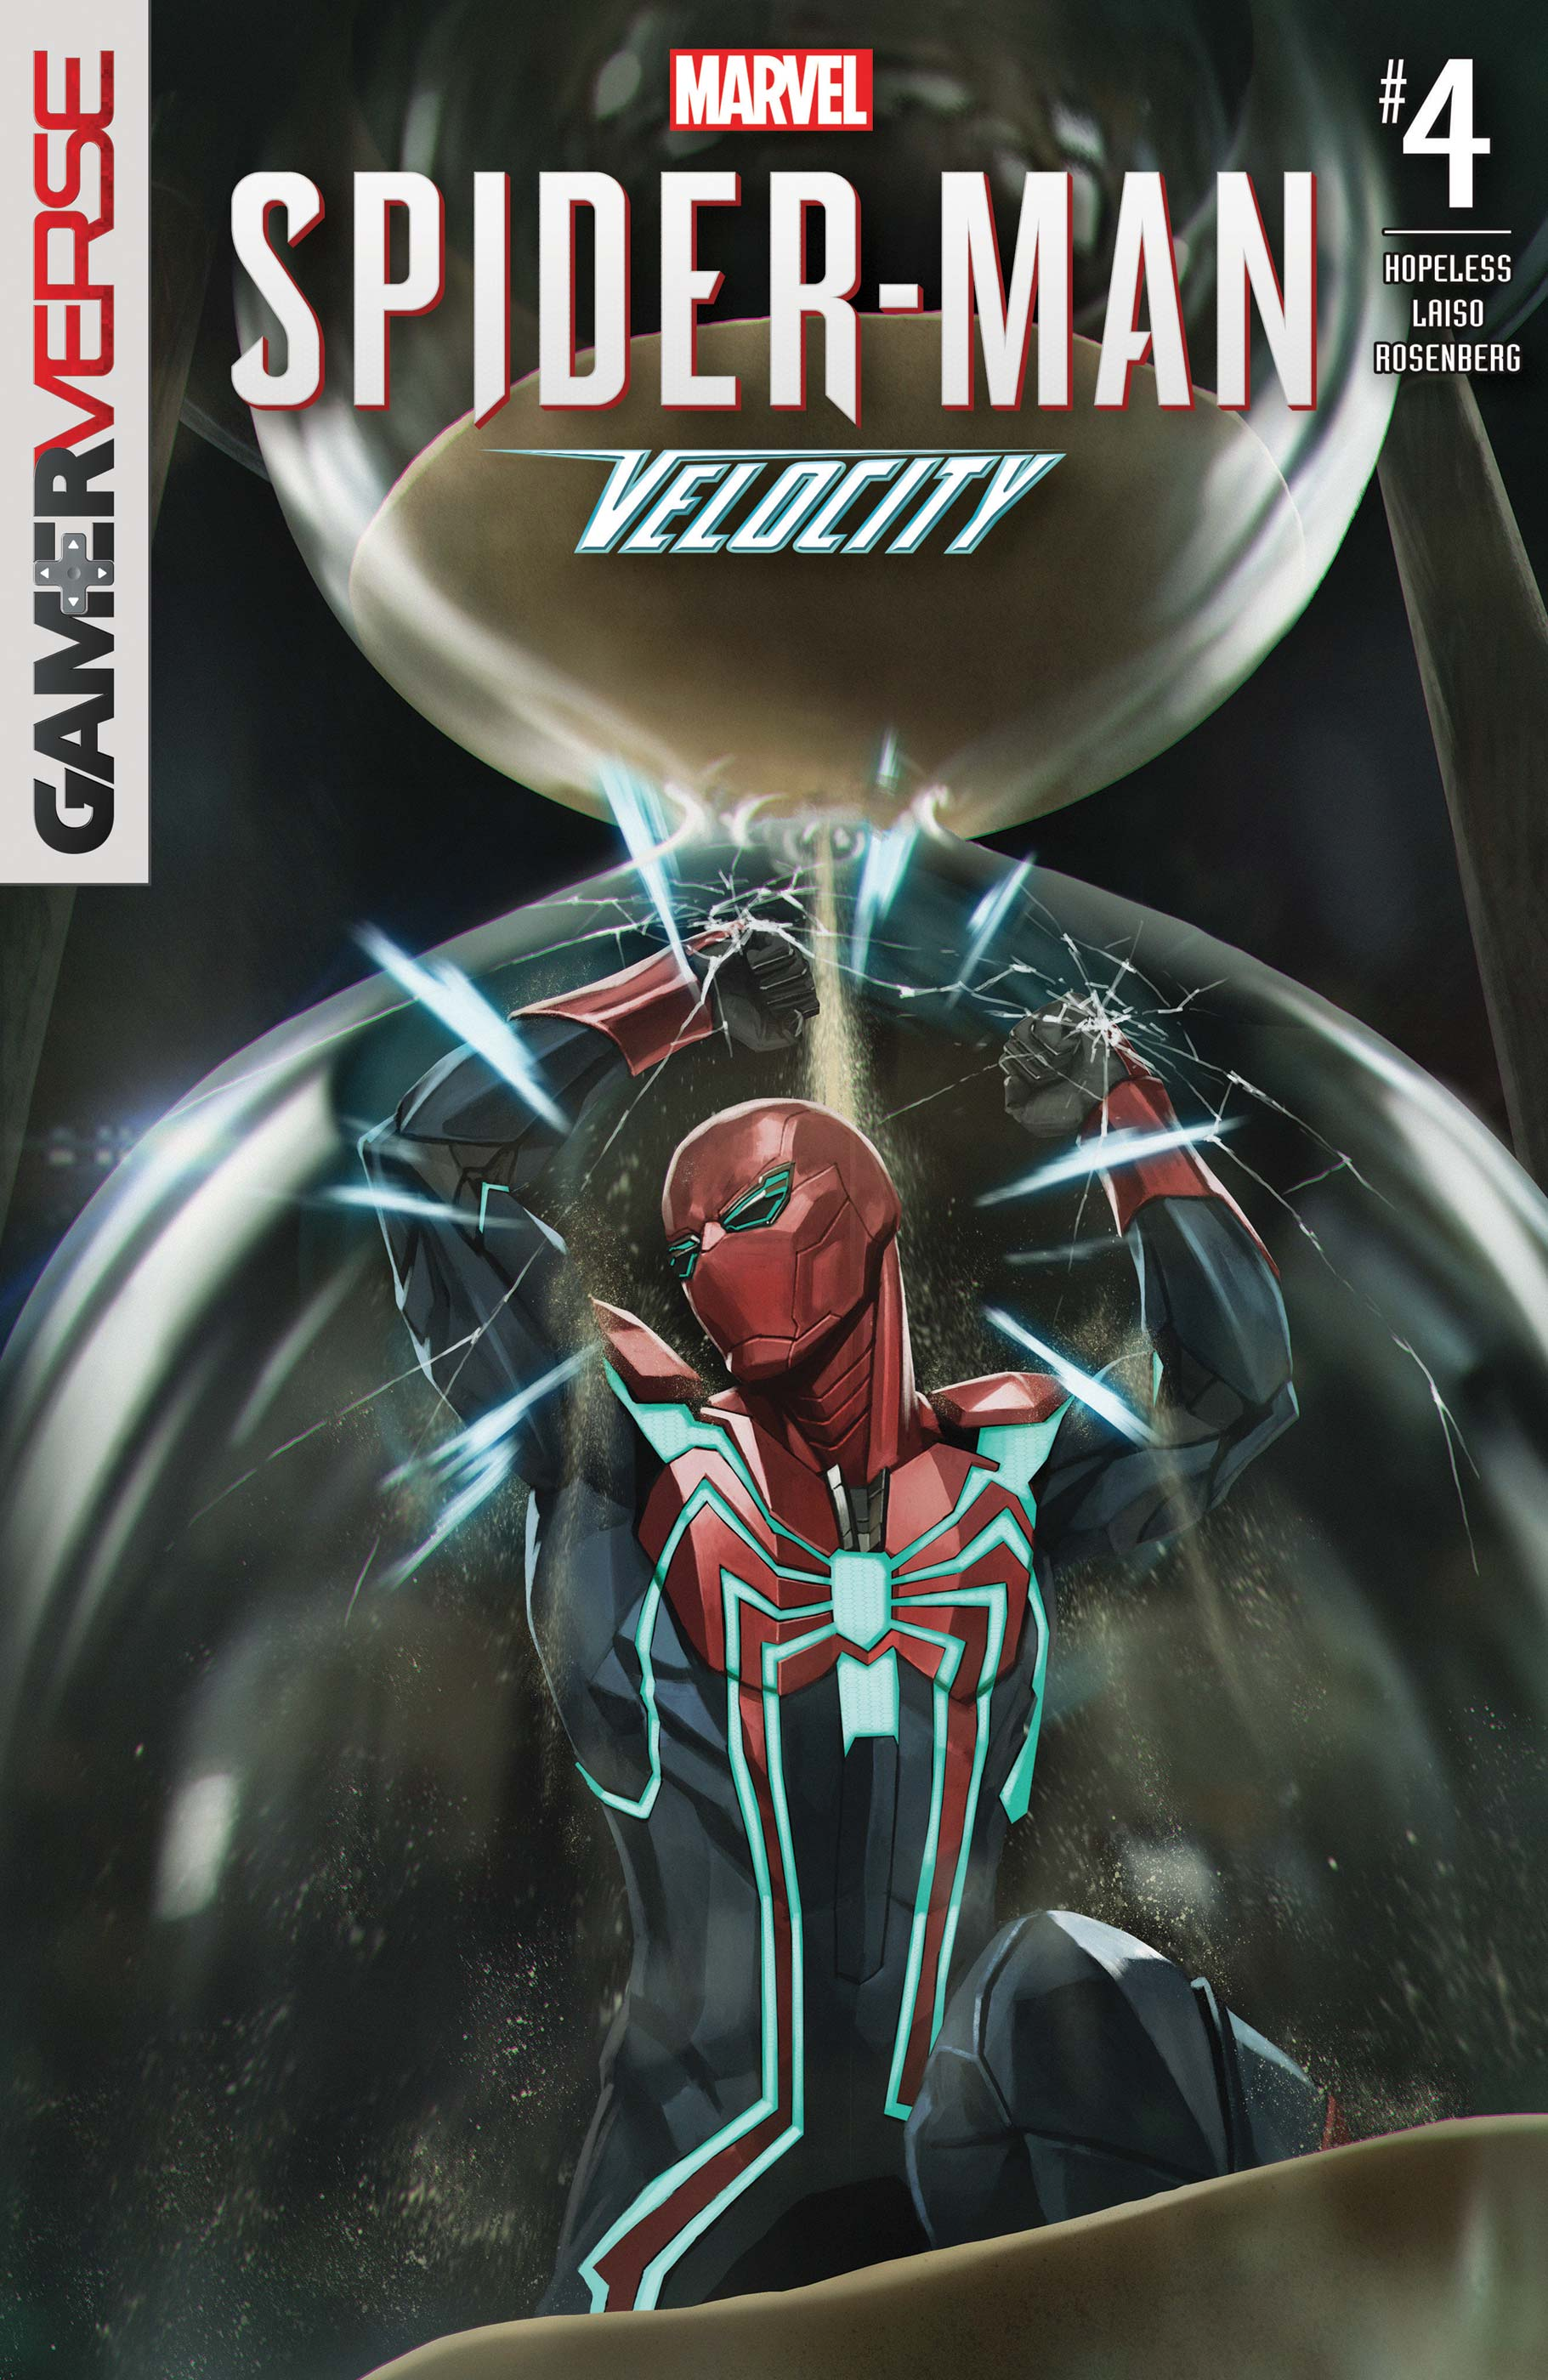 Marvel's Spider-Man: Velocity (2019) #4